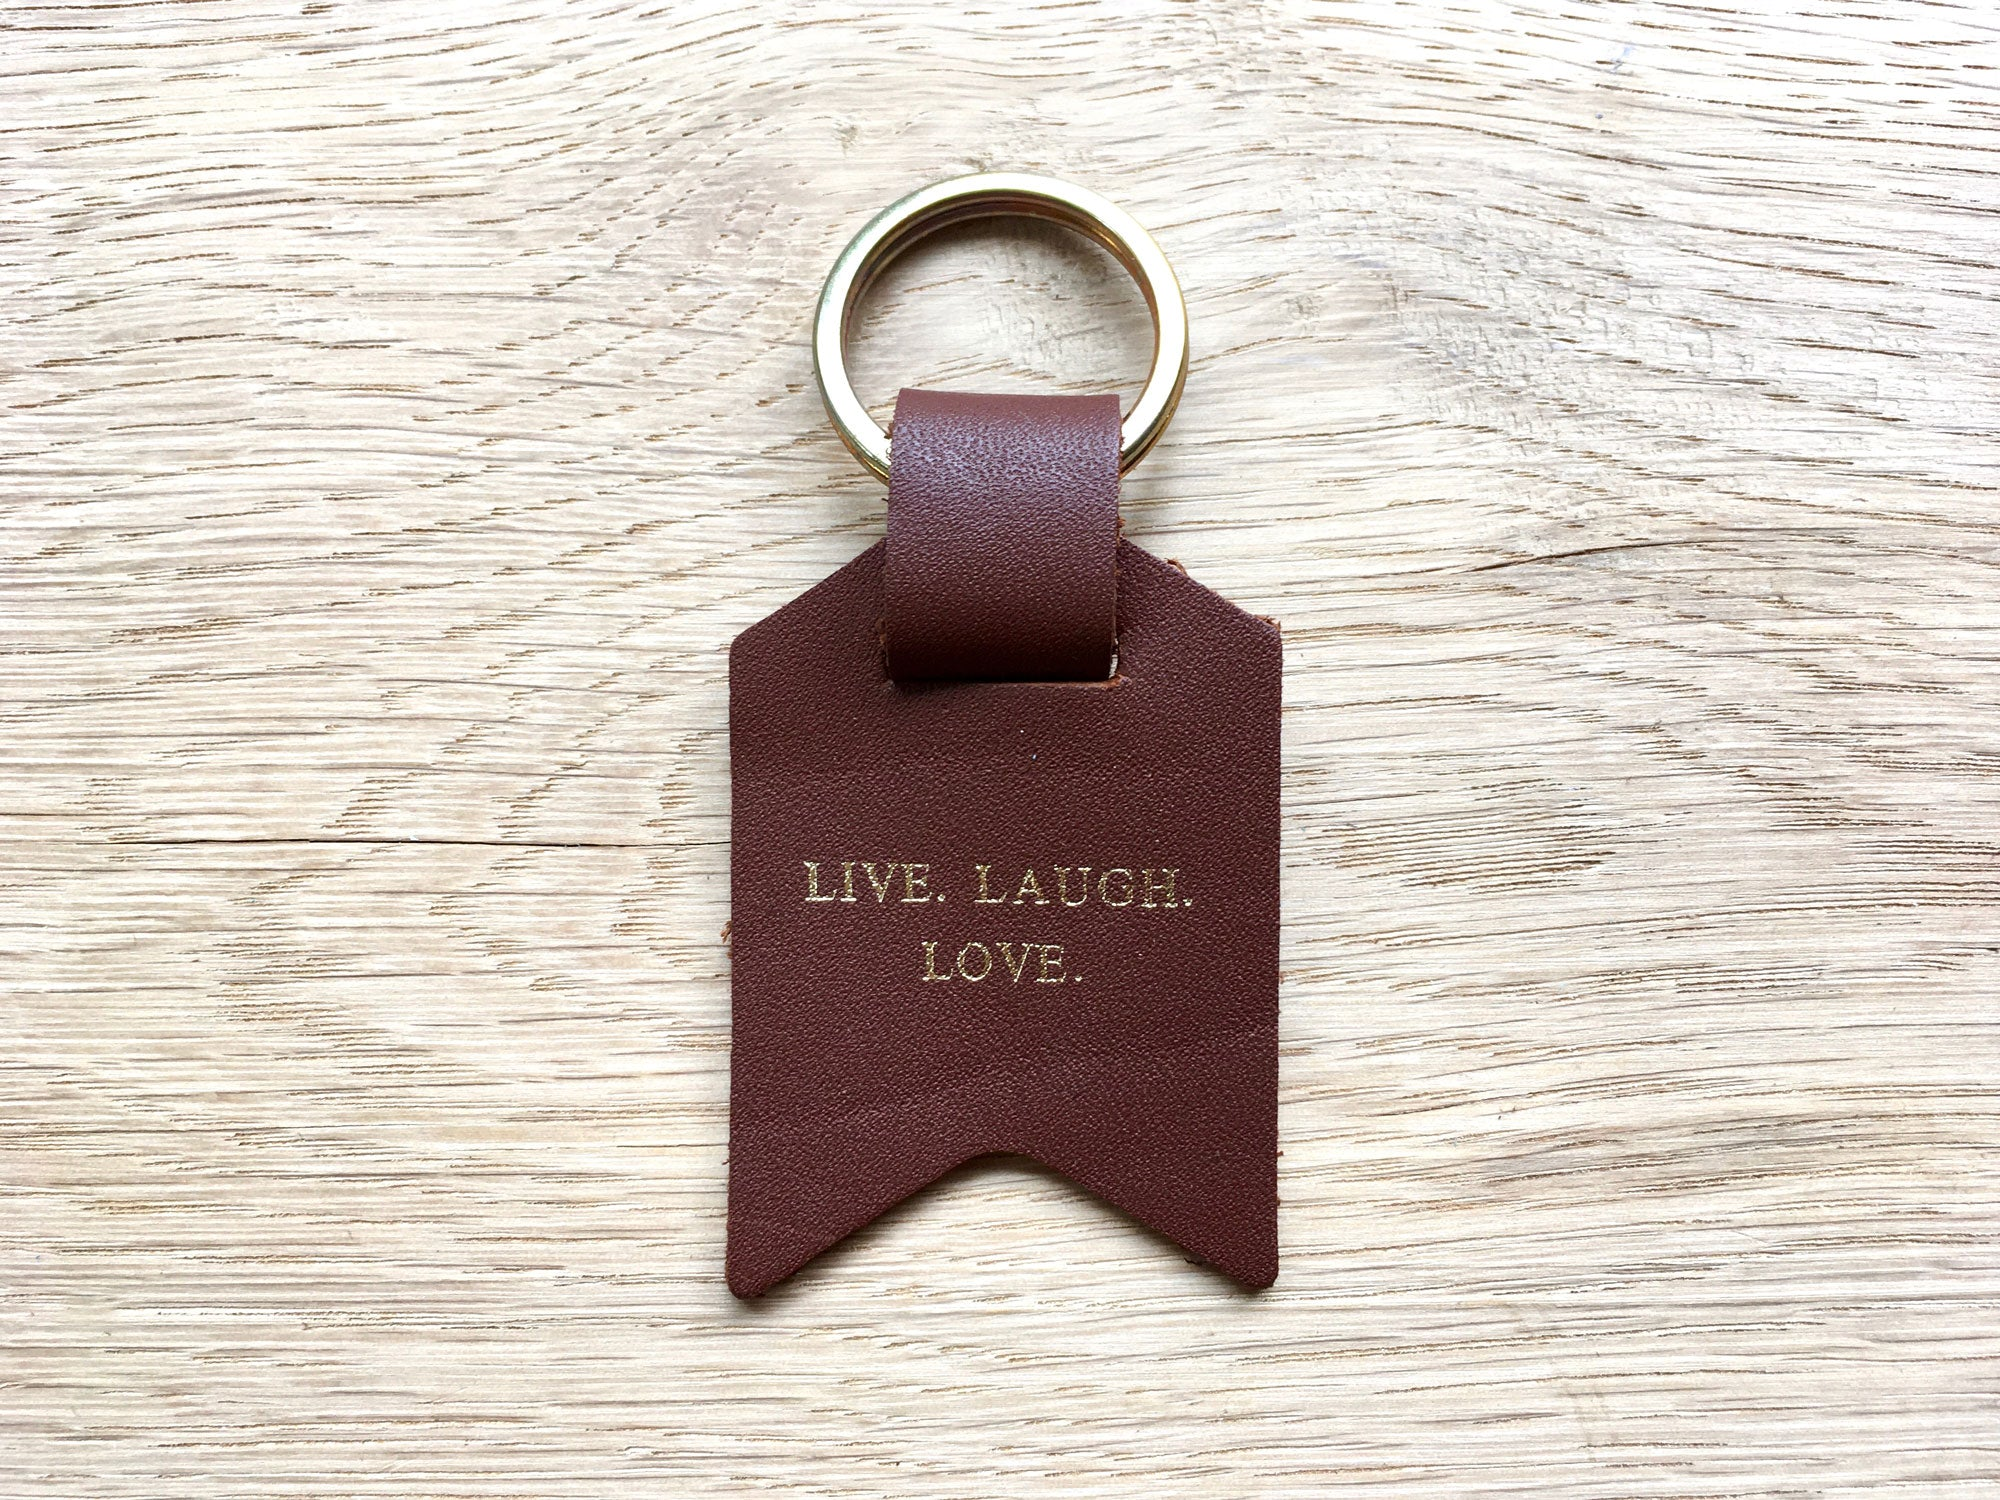 Also available – Live Laugh Love, Light Brown Leather Keyring